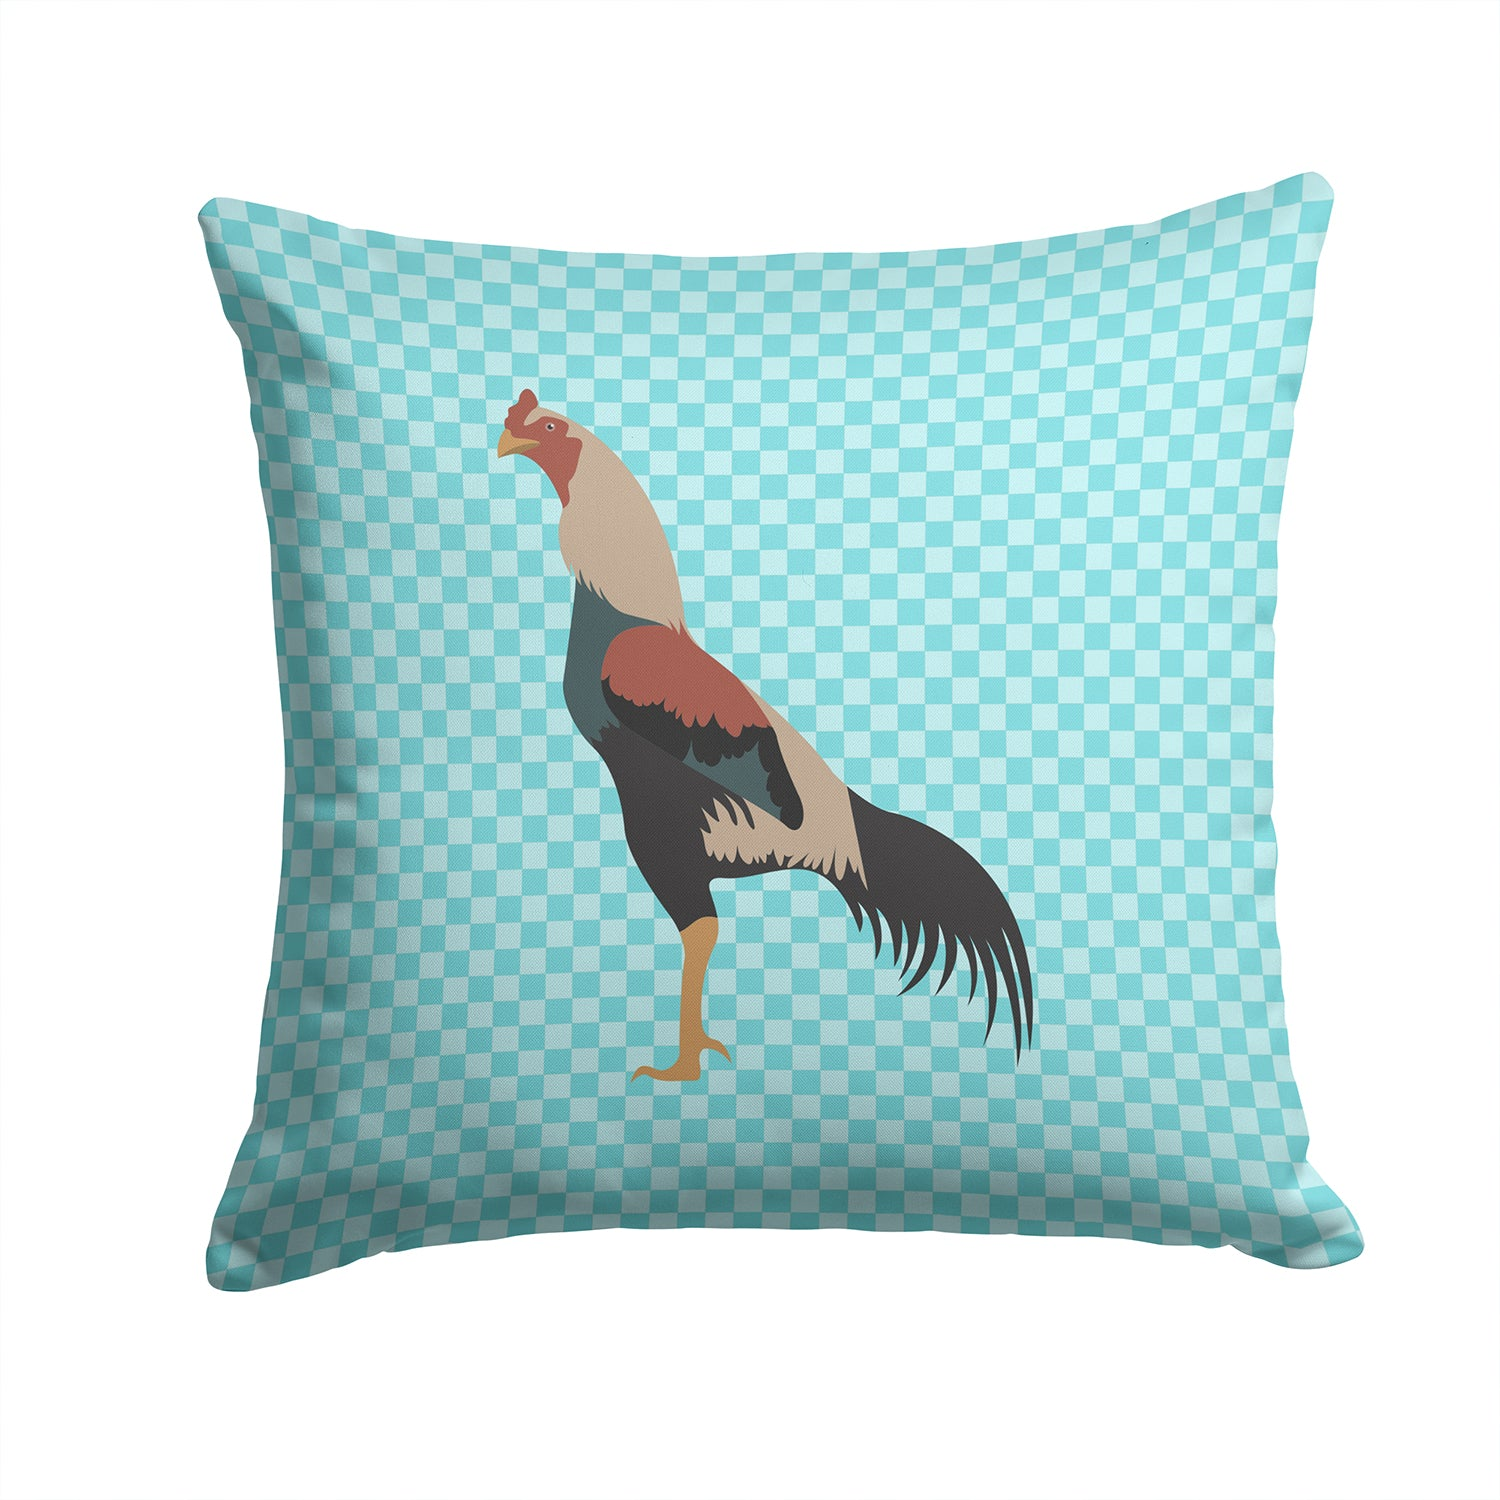 Kulang Chicken Blue Check Fabric Decorative Pillow BB8012PW1414 by Caroline's Treasures